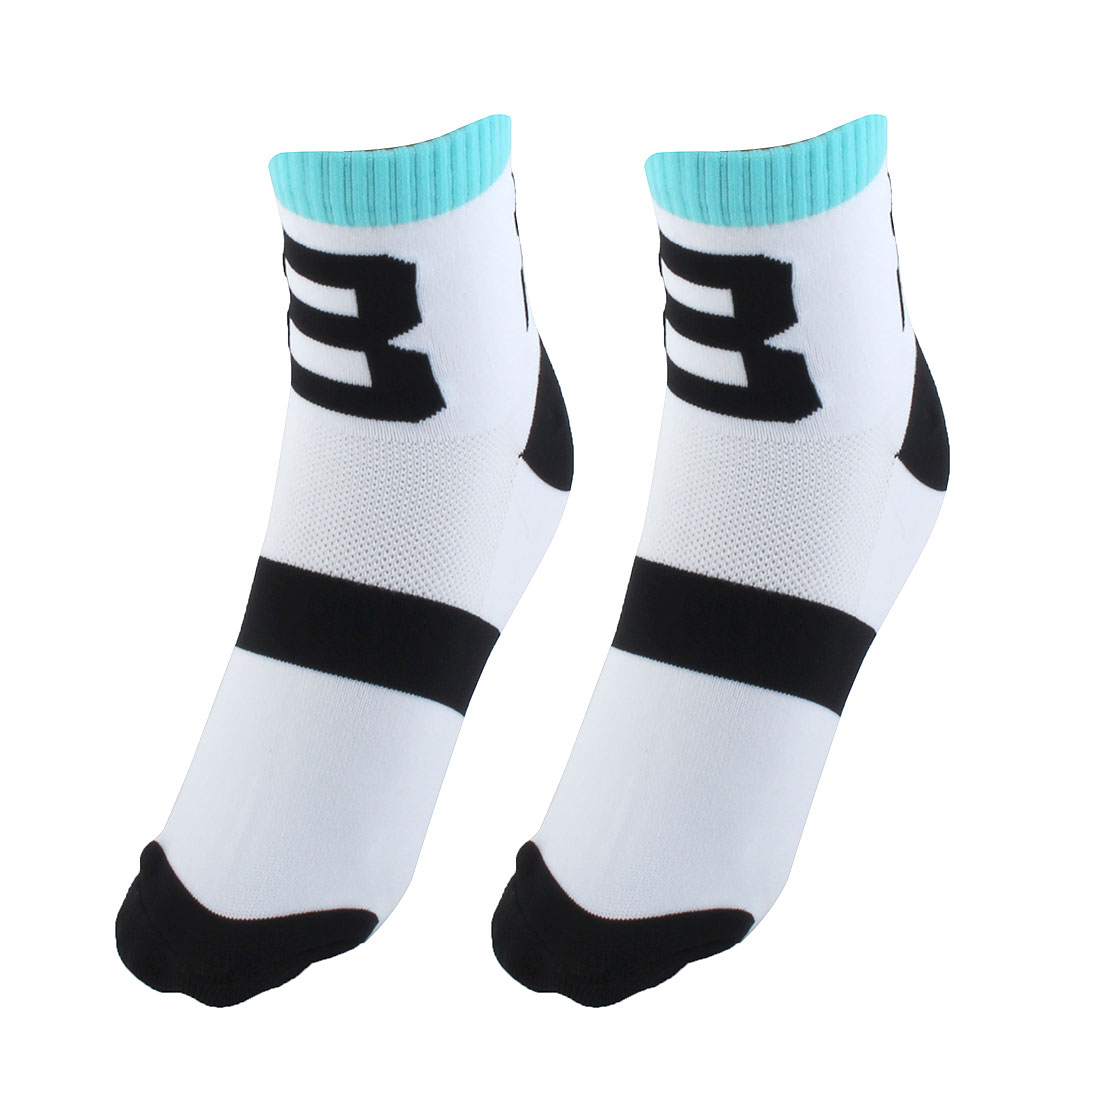 R-BAO Authorized Bicycle Football Mountain Bike Cotton Blend Compression Sports Cycling Socks White 2 Pairs